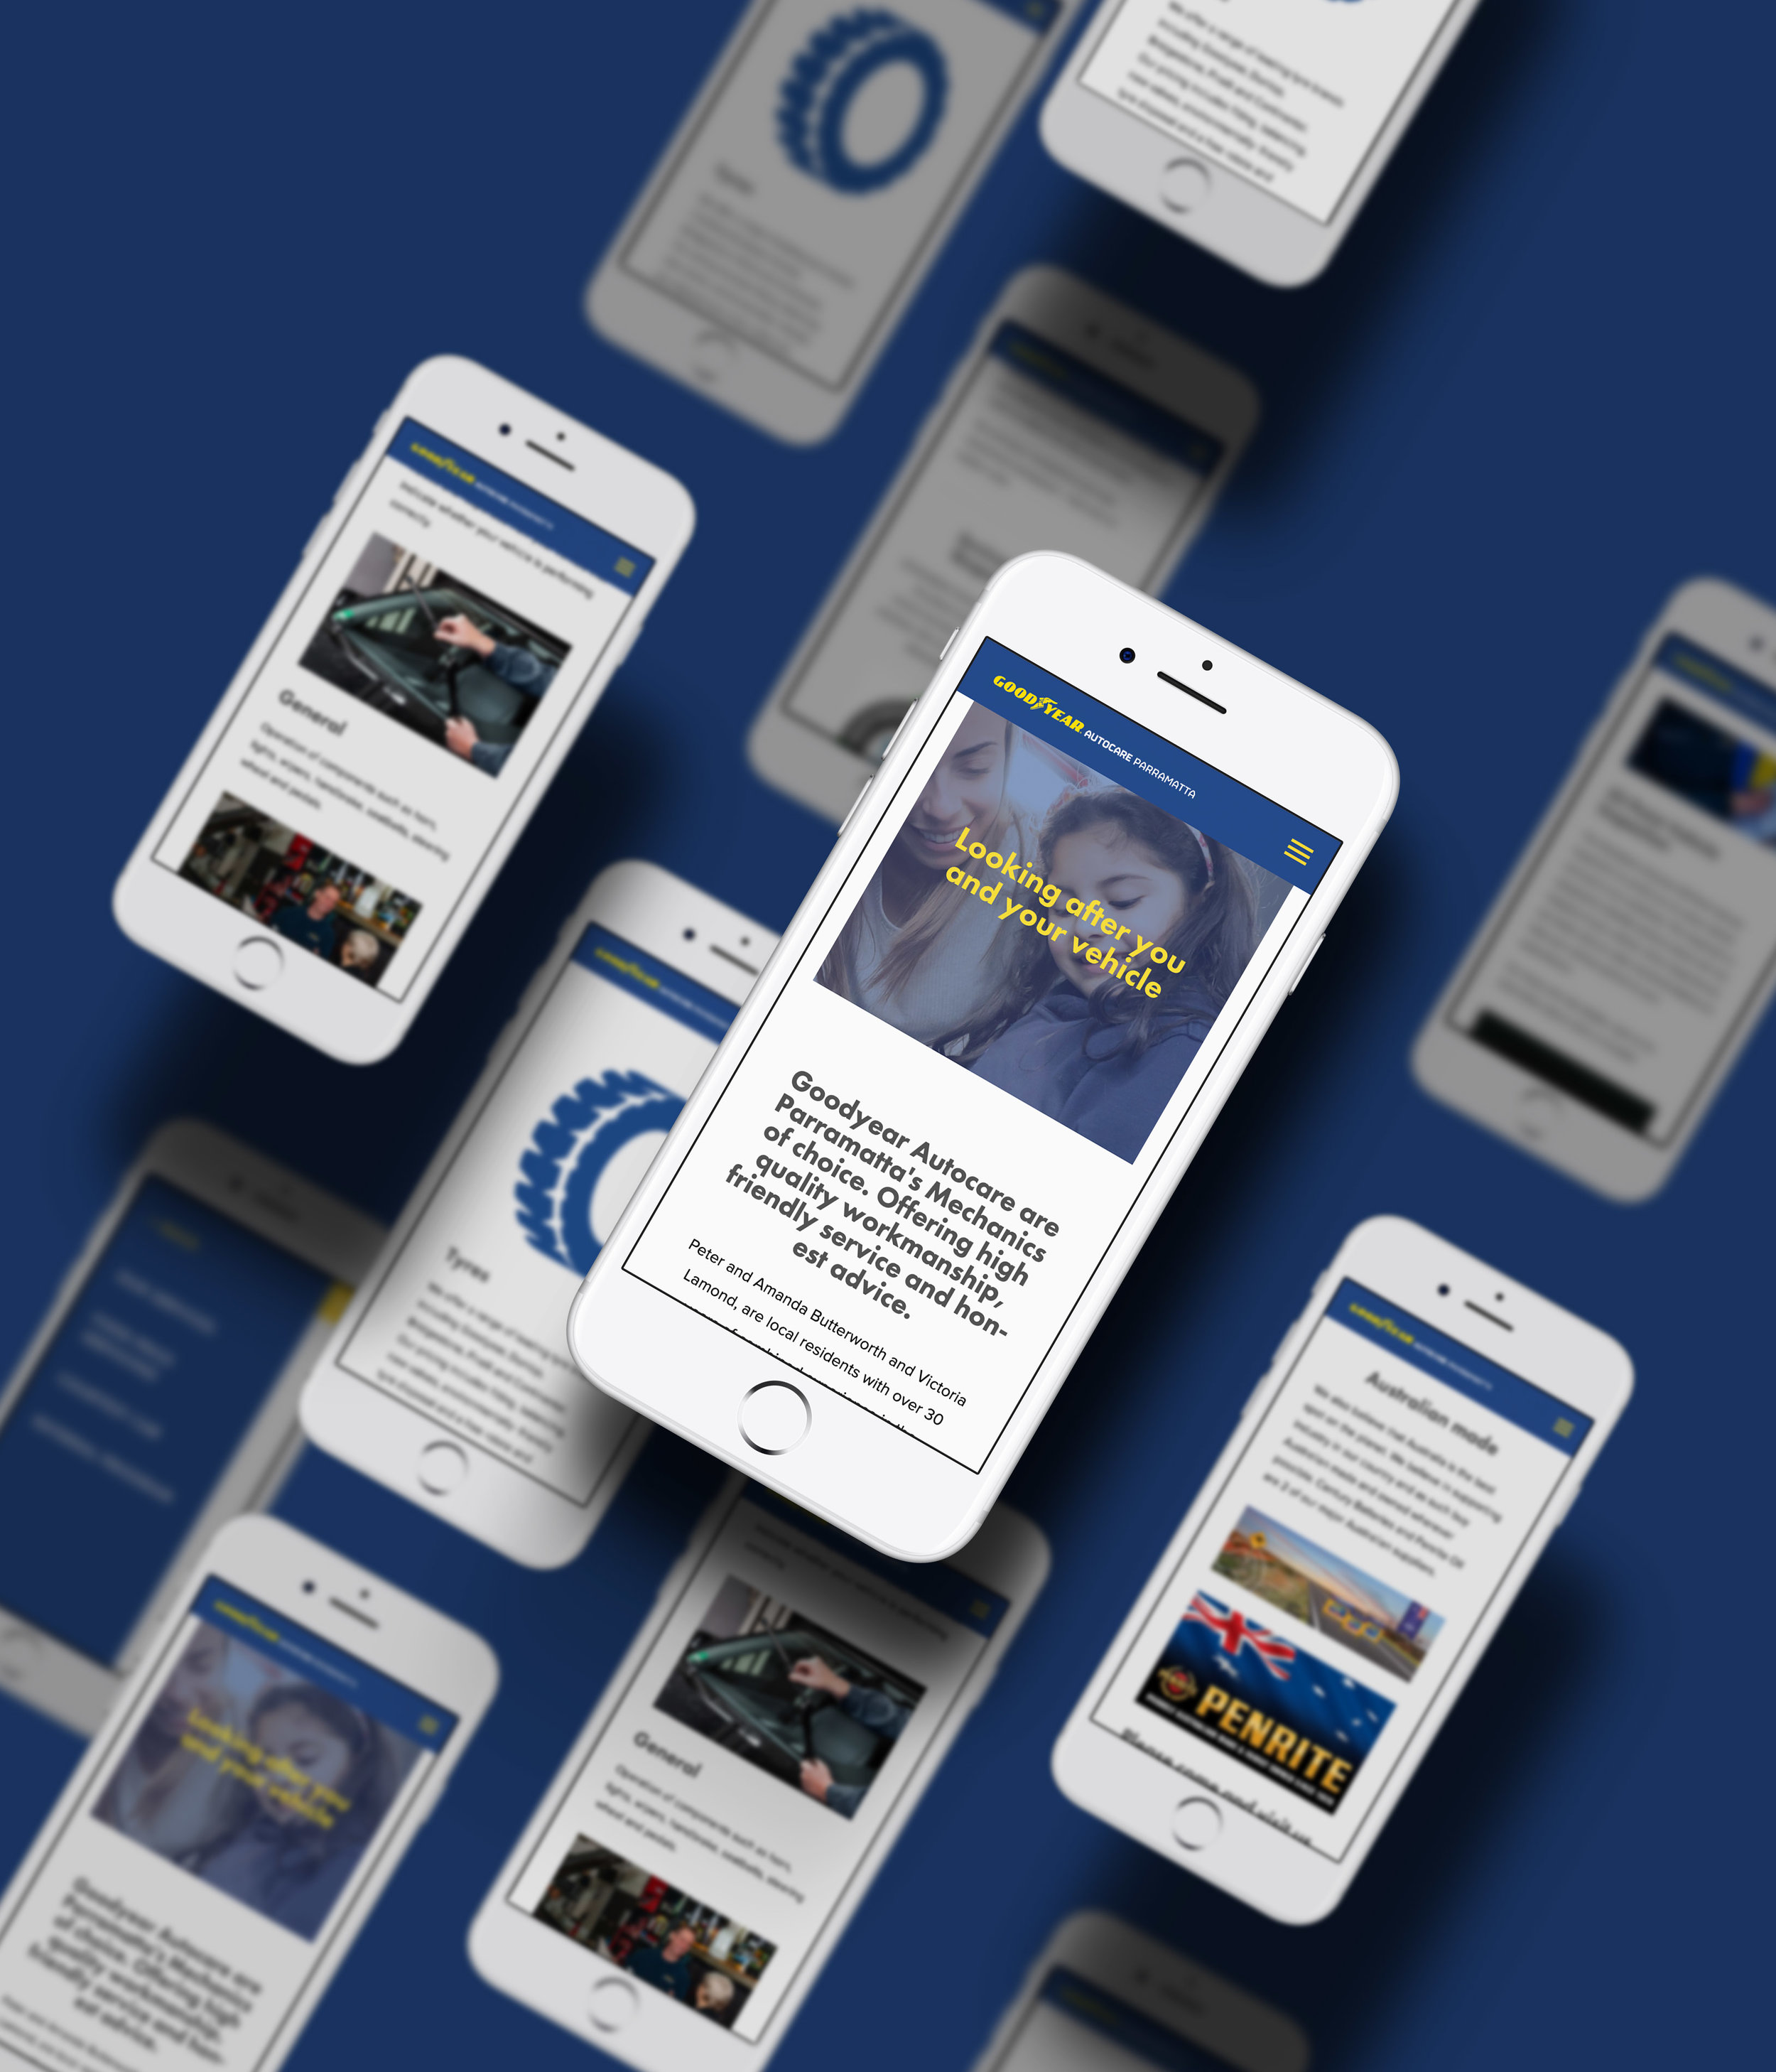 GoodyearParramatta_App-Screens-Showcase-Presentation_cropped.jpg